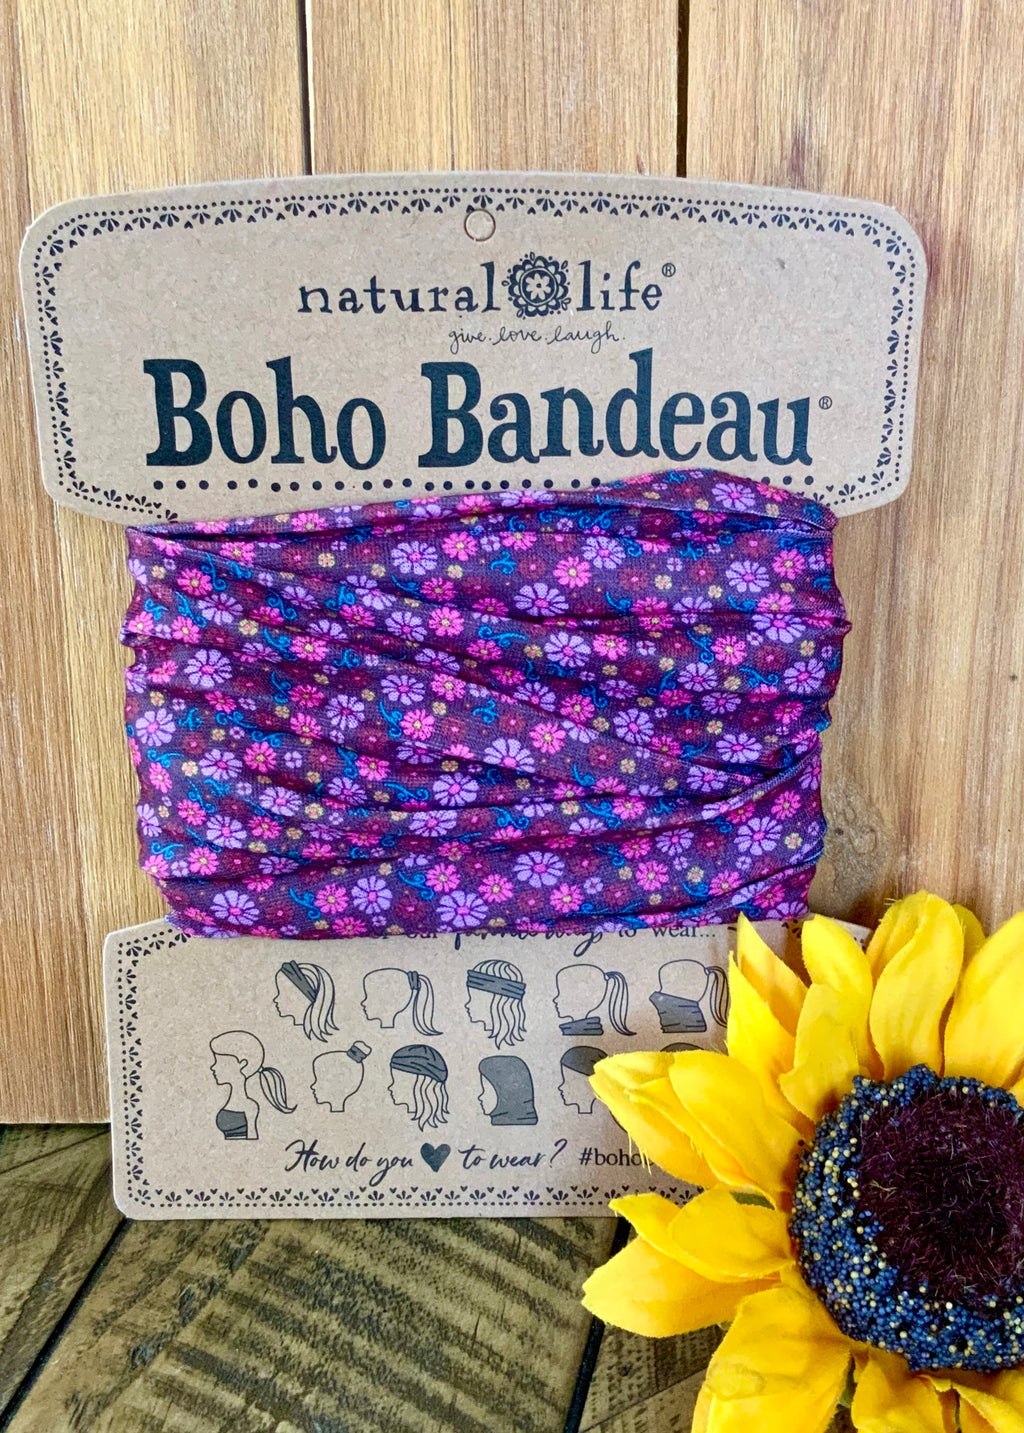 70's Girl Full Boho Bandeau